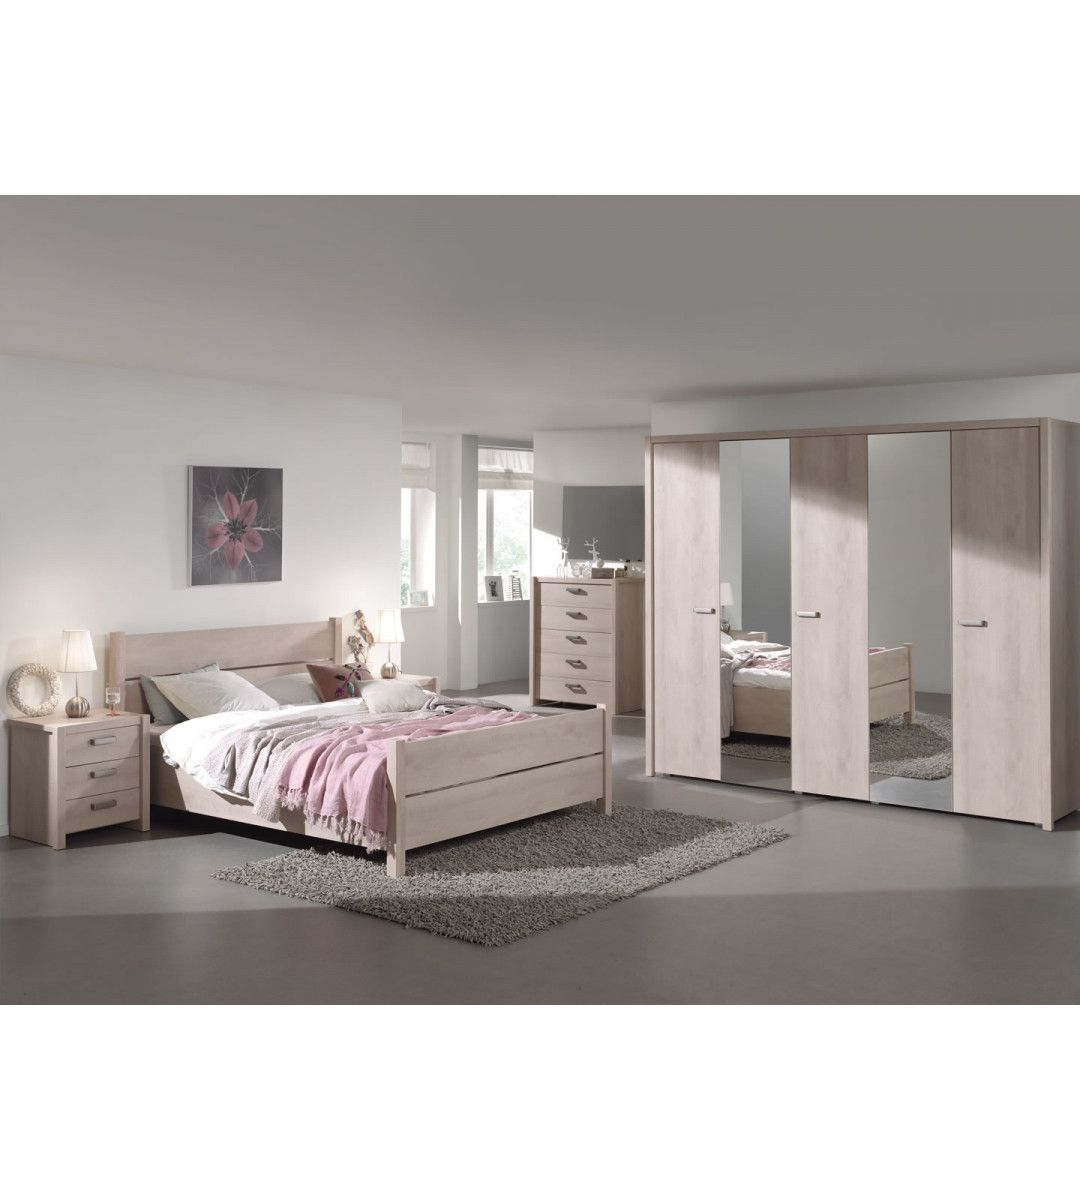 Chambre A Coucher Adulte Design Chambres Complète Adulte Chambres à Coucher Complète Pas Cher